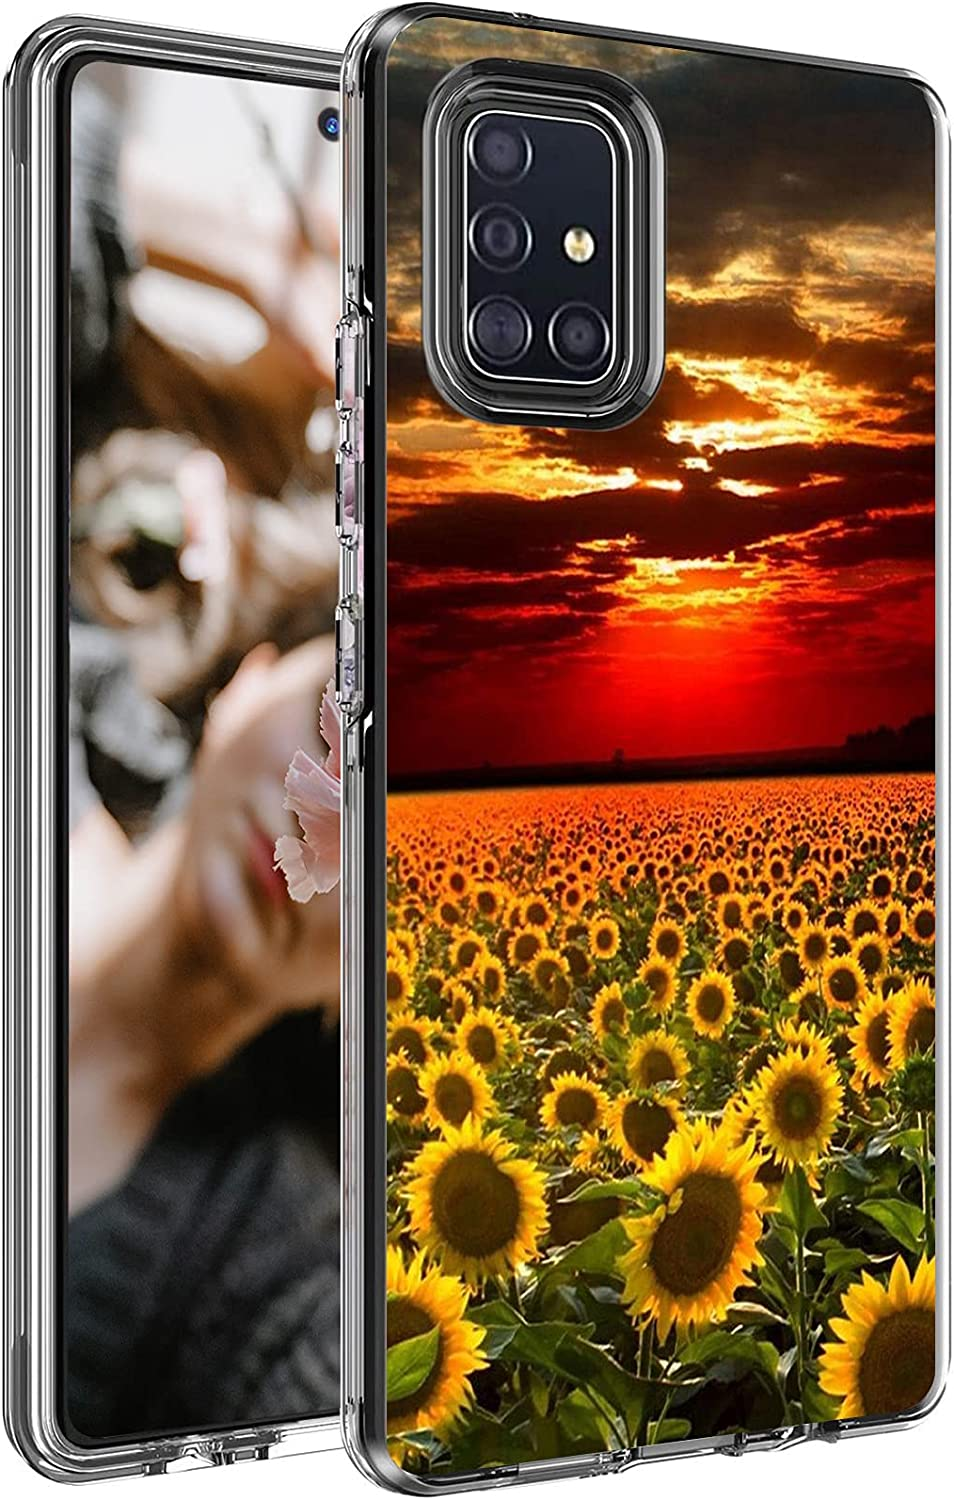 Case for Samsung Galaxy A71 5G 6.7 Inch, Shock-Absorption Flexible TPU Bumper Slim Dual Layer Hybrid Protective Cover Clear with Pattern for Girls Men Women, Sunflower Field Sunset